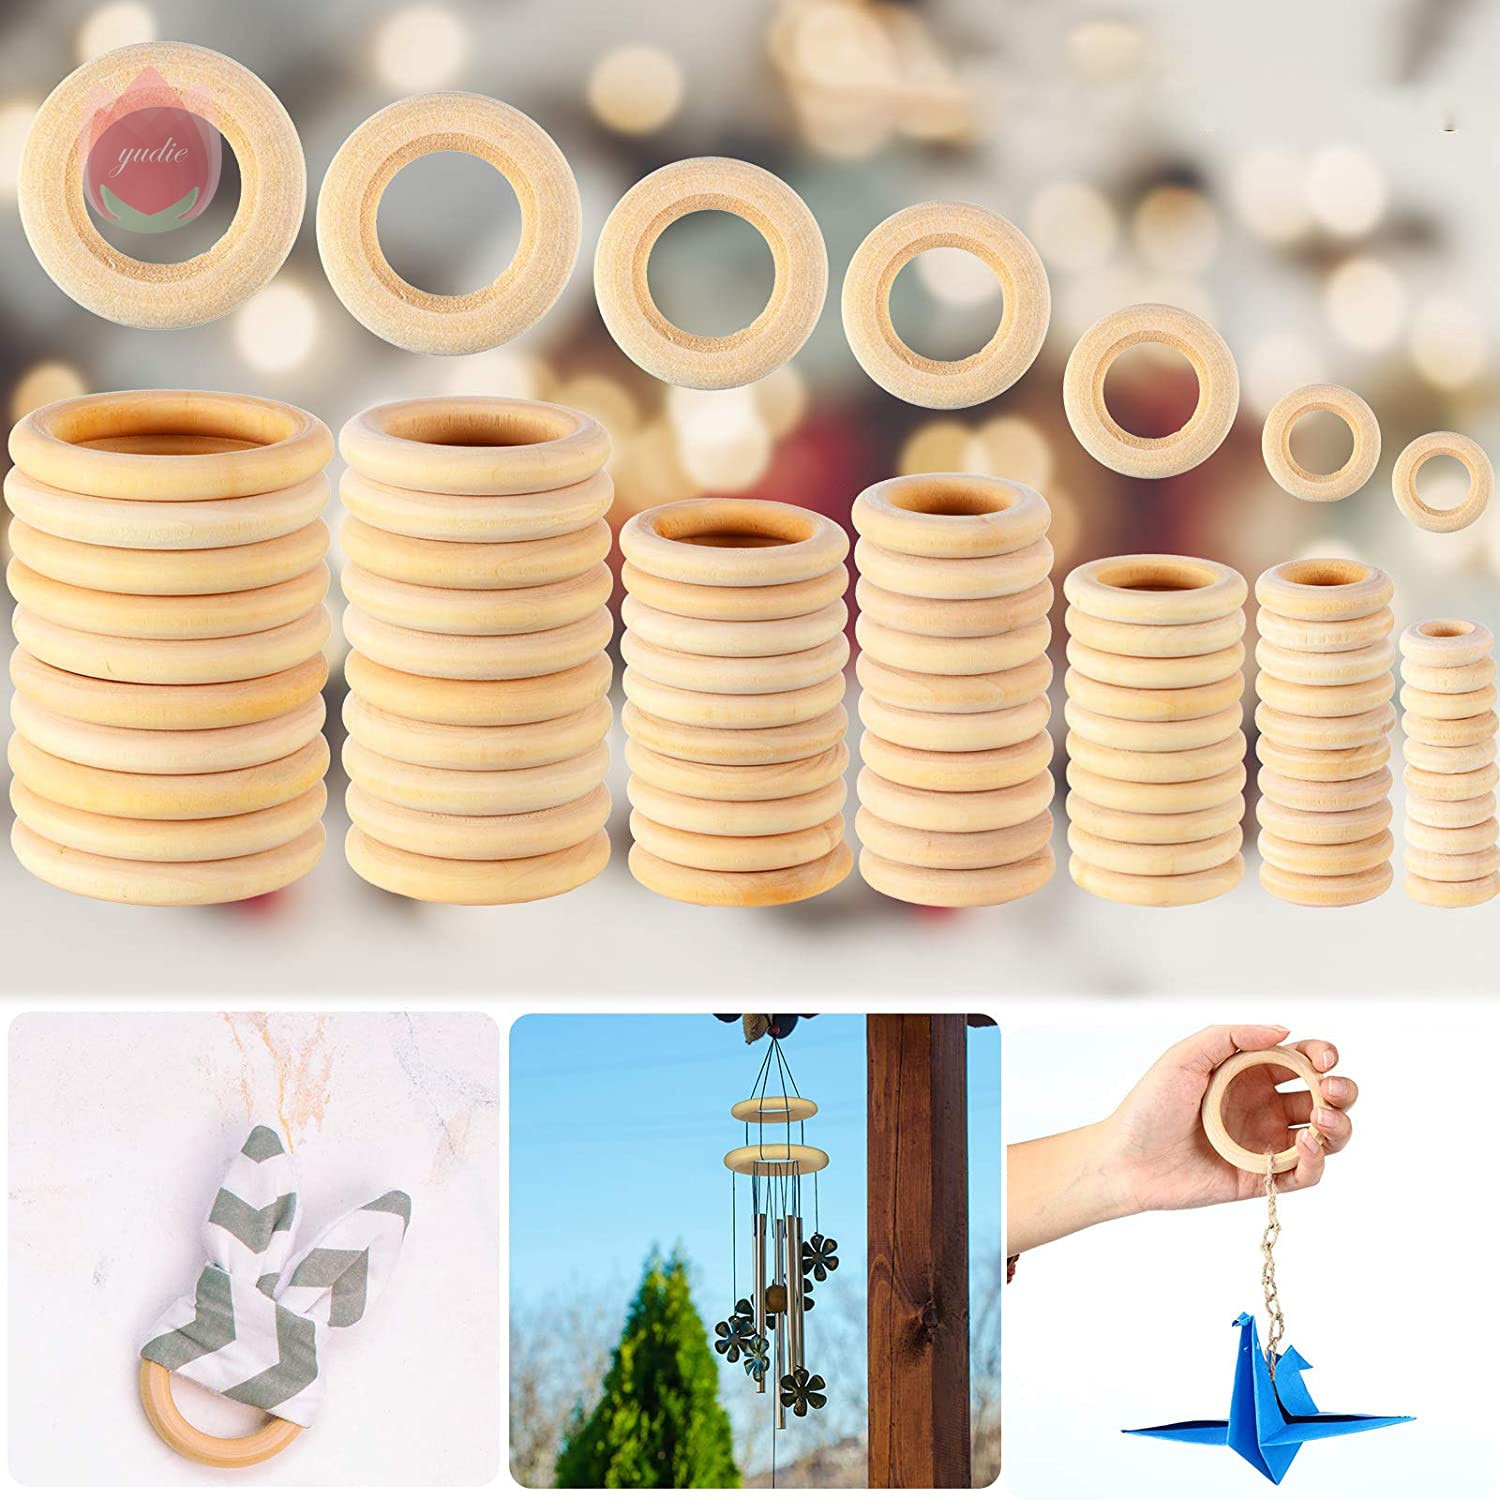 AliExpress - 5pcs/Lot Natural Wood Circle DIY Crafts For Jewelry Making Baby Ring Kids Home Party Decoration Wooden Toy Ornaments Accessories